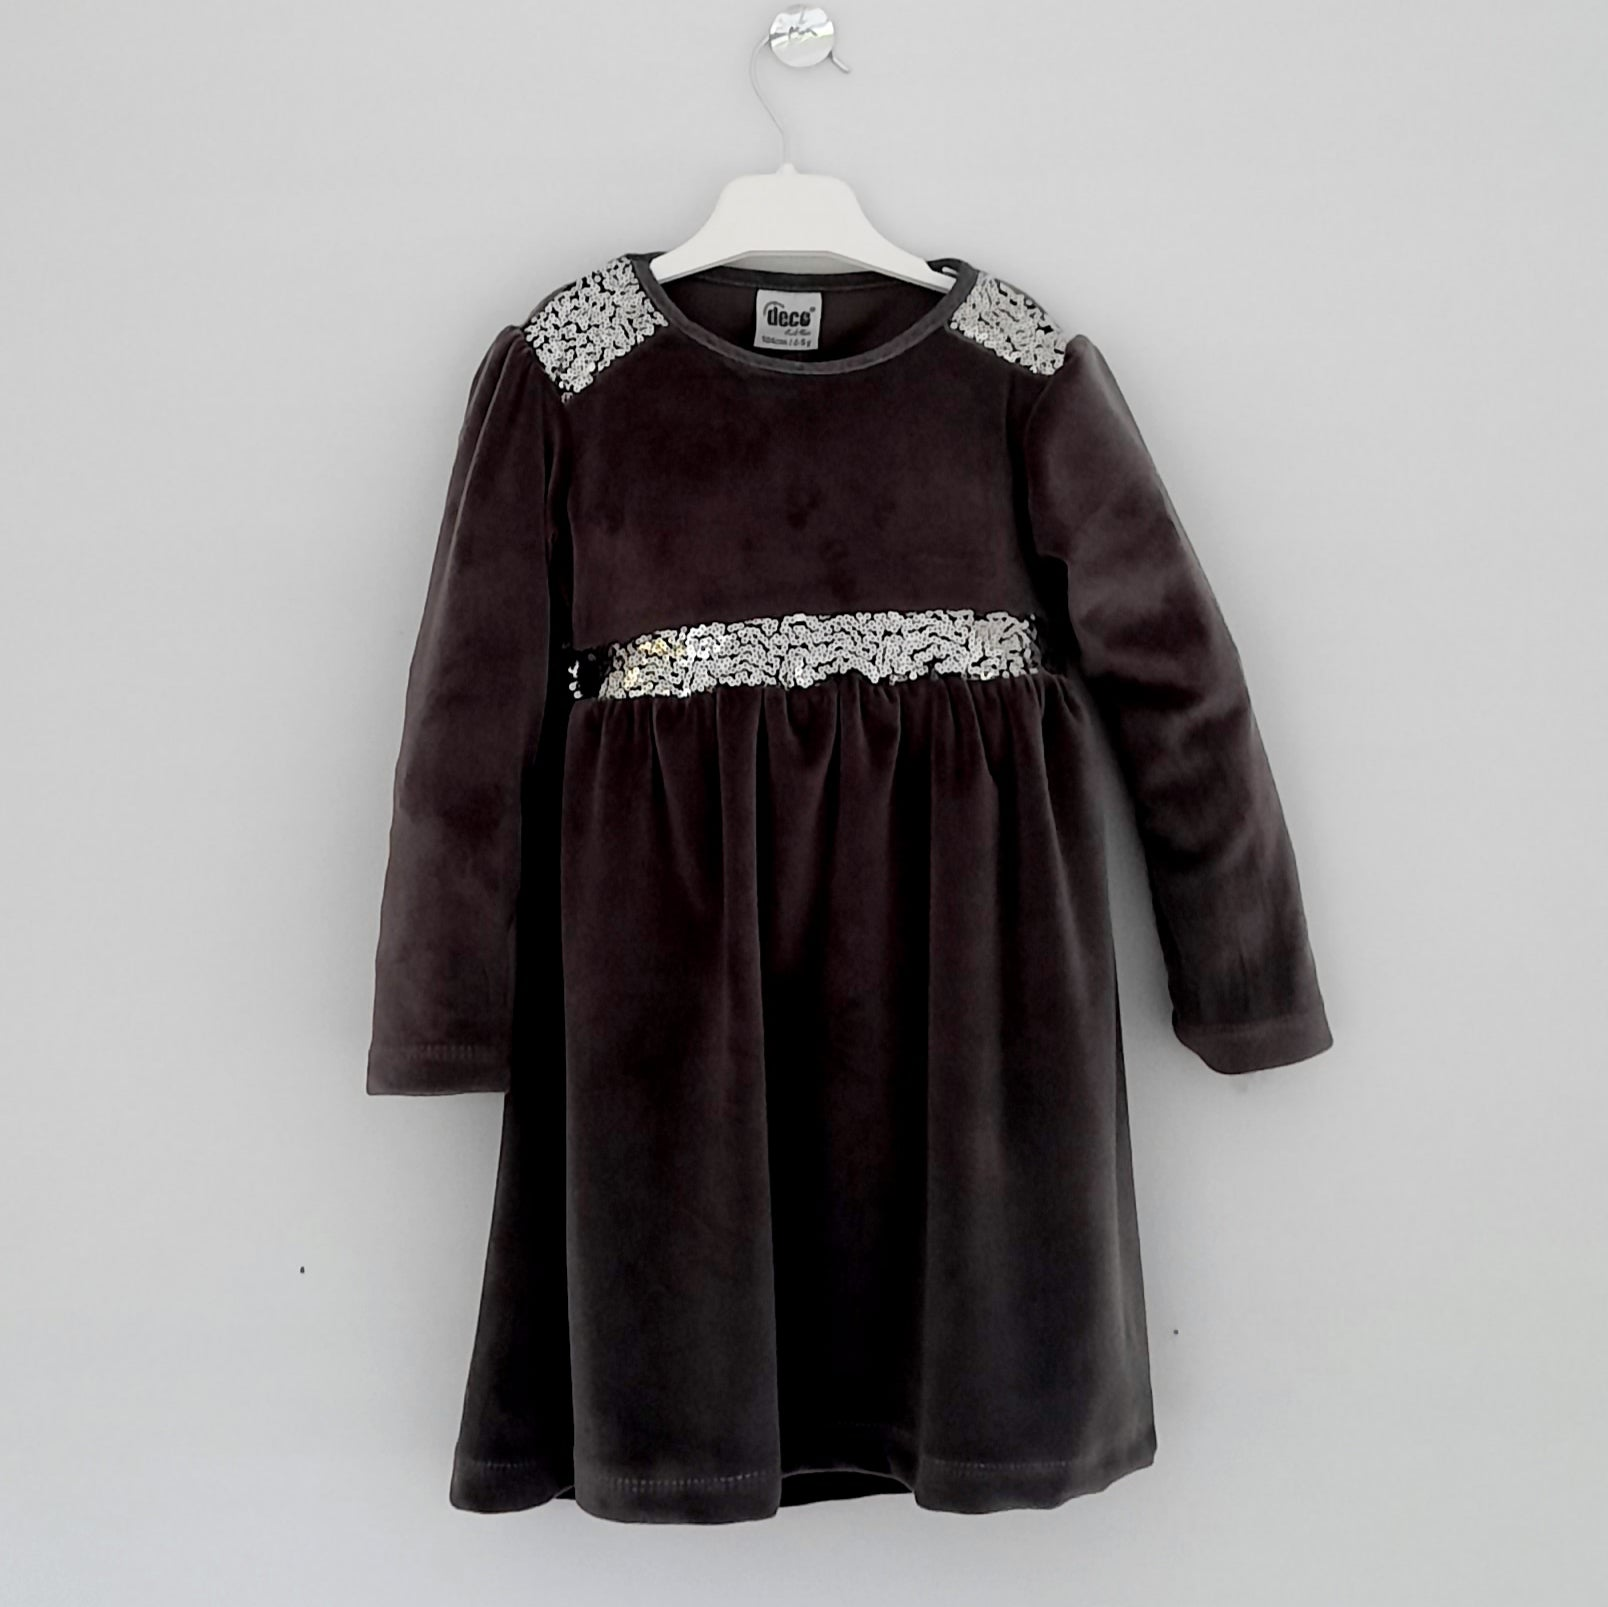 Silver Velvet Girls Dress